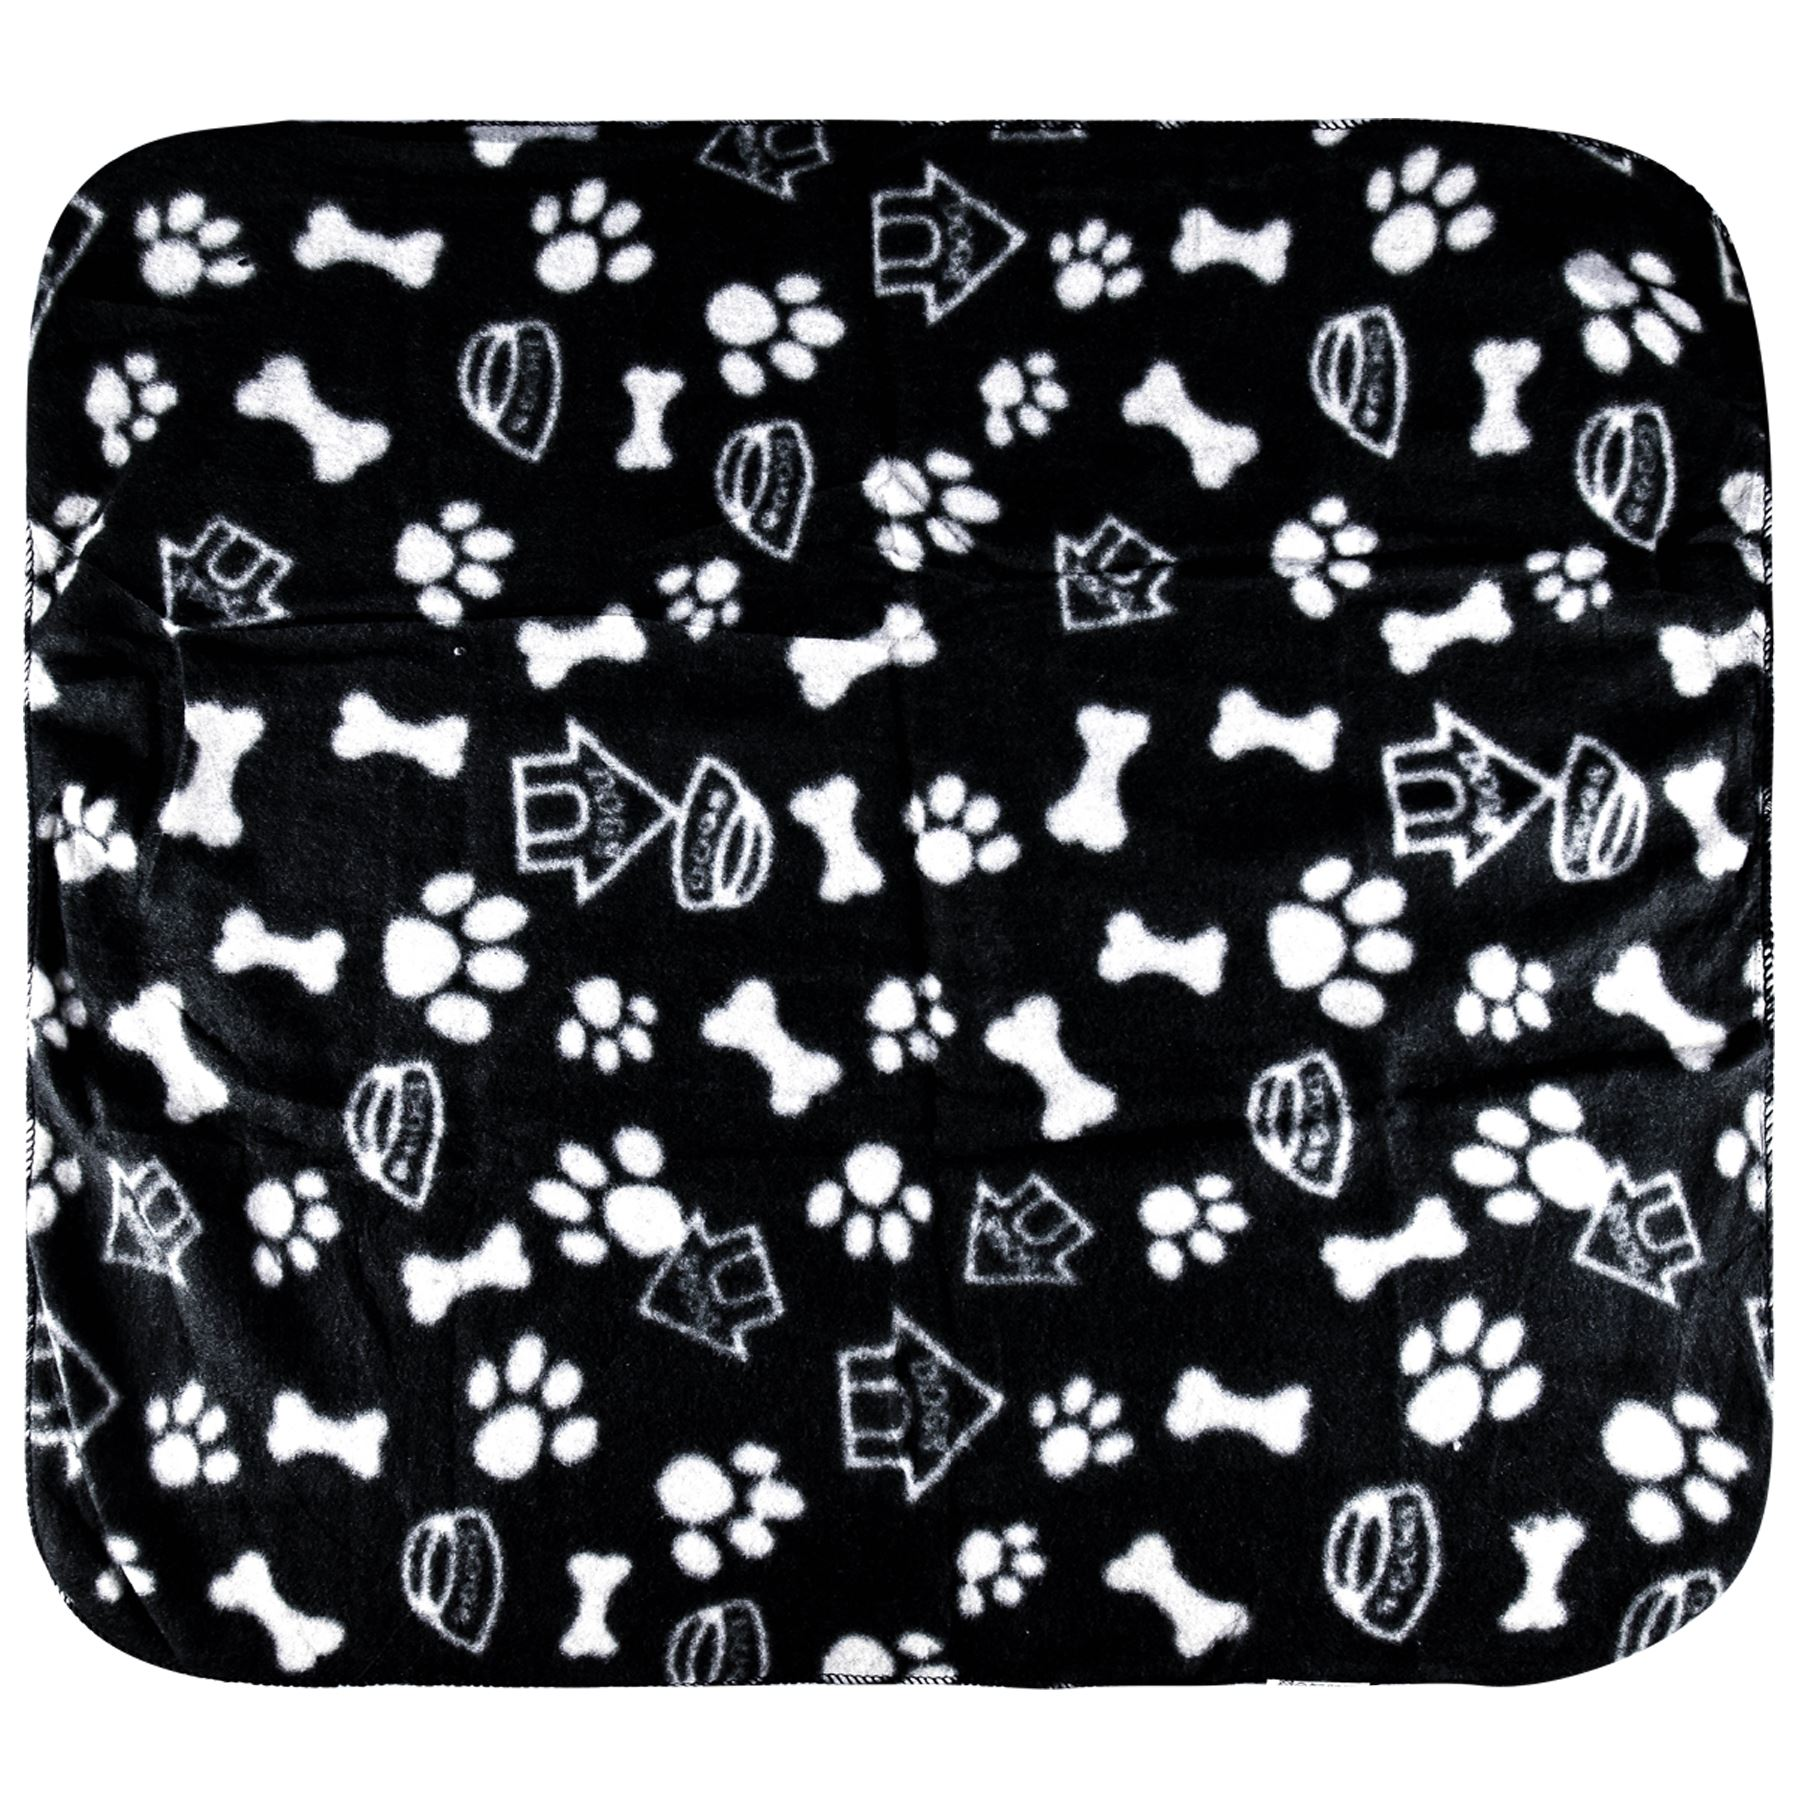 Pet-Blanket-Dogs-amp-Puppy-Cat-Paw-Print-Soft-Warm-Fleece-Bed-Travel-Basket-Car thumbnail 14